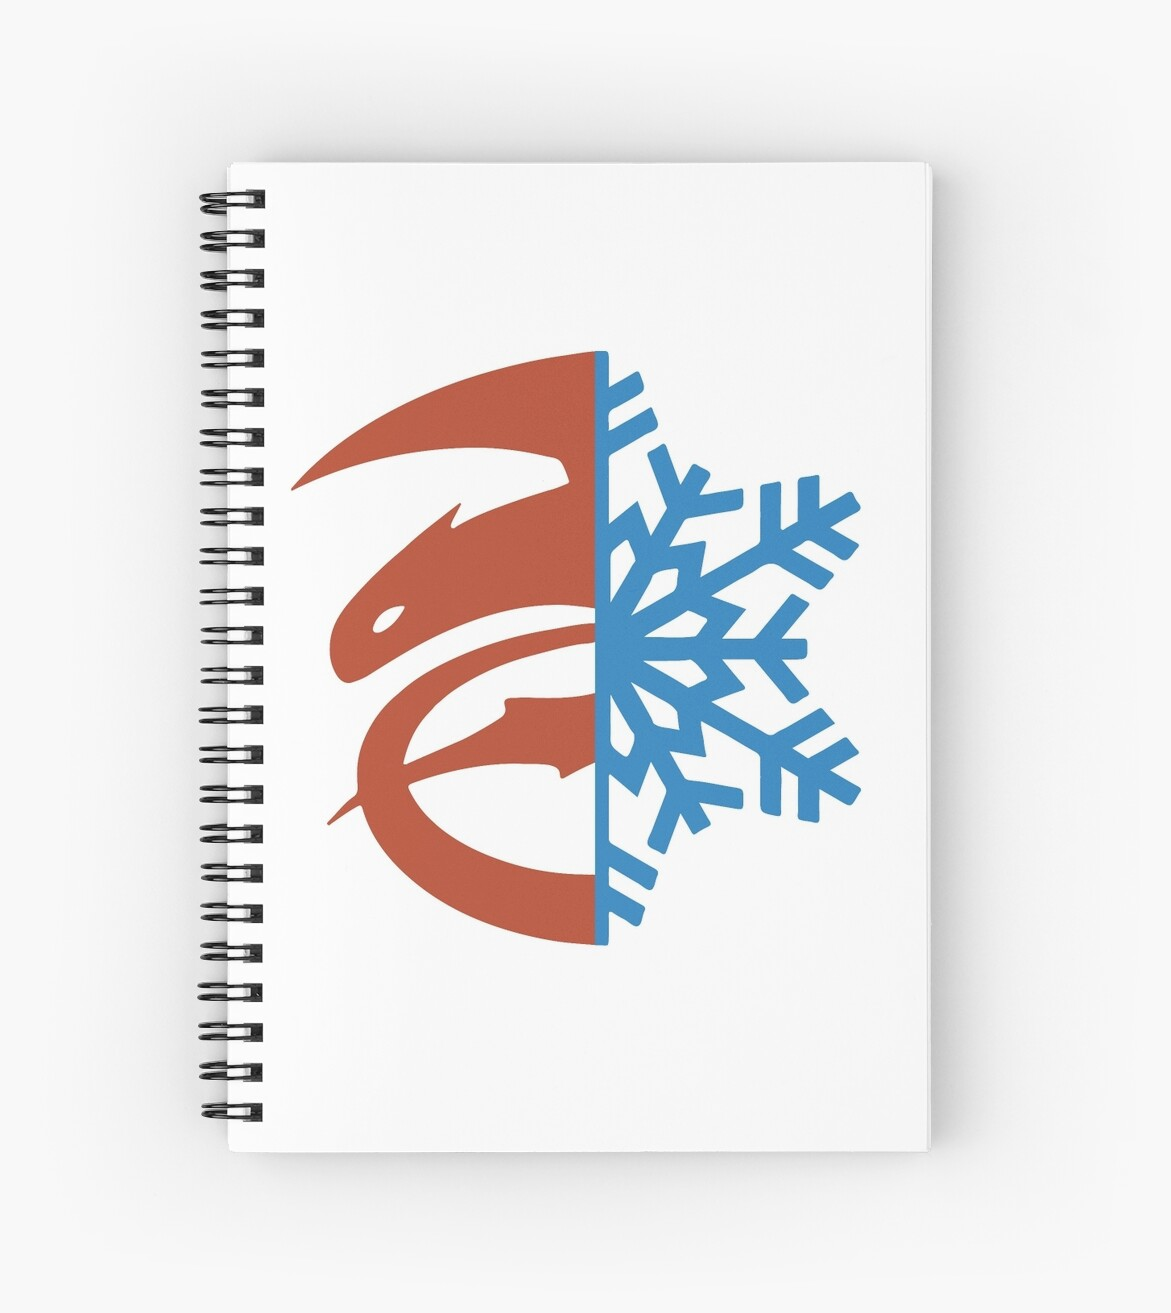 Hijack Ship Symbol Spiral Notebooks By Enemyofsanity Redbubble